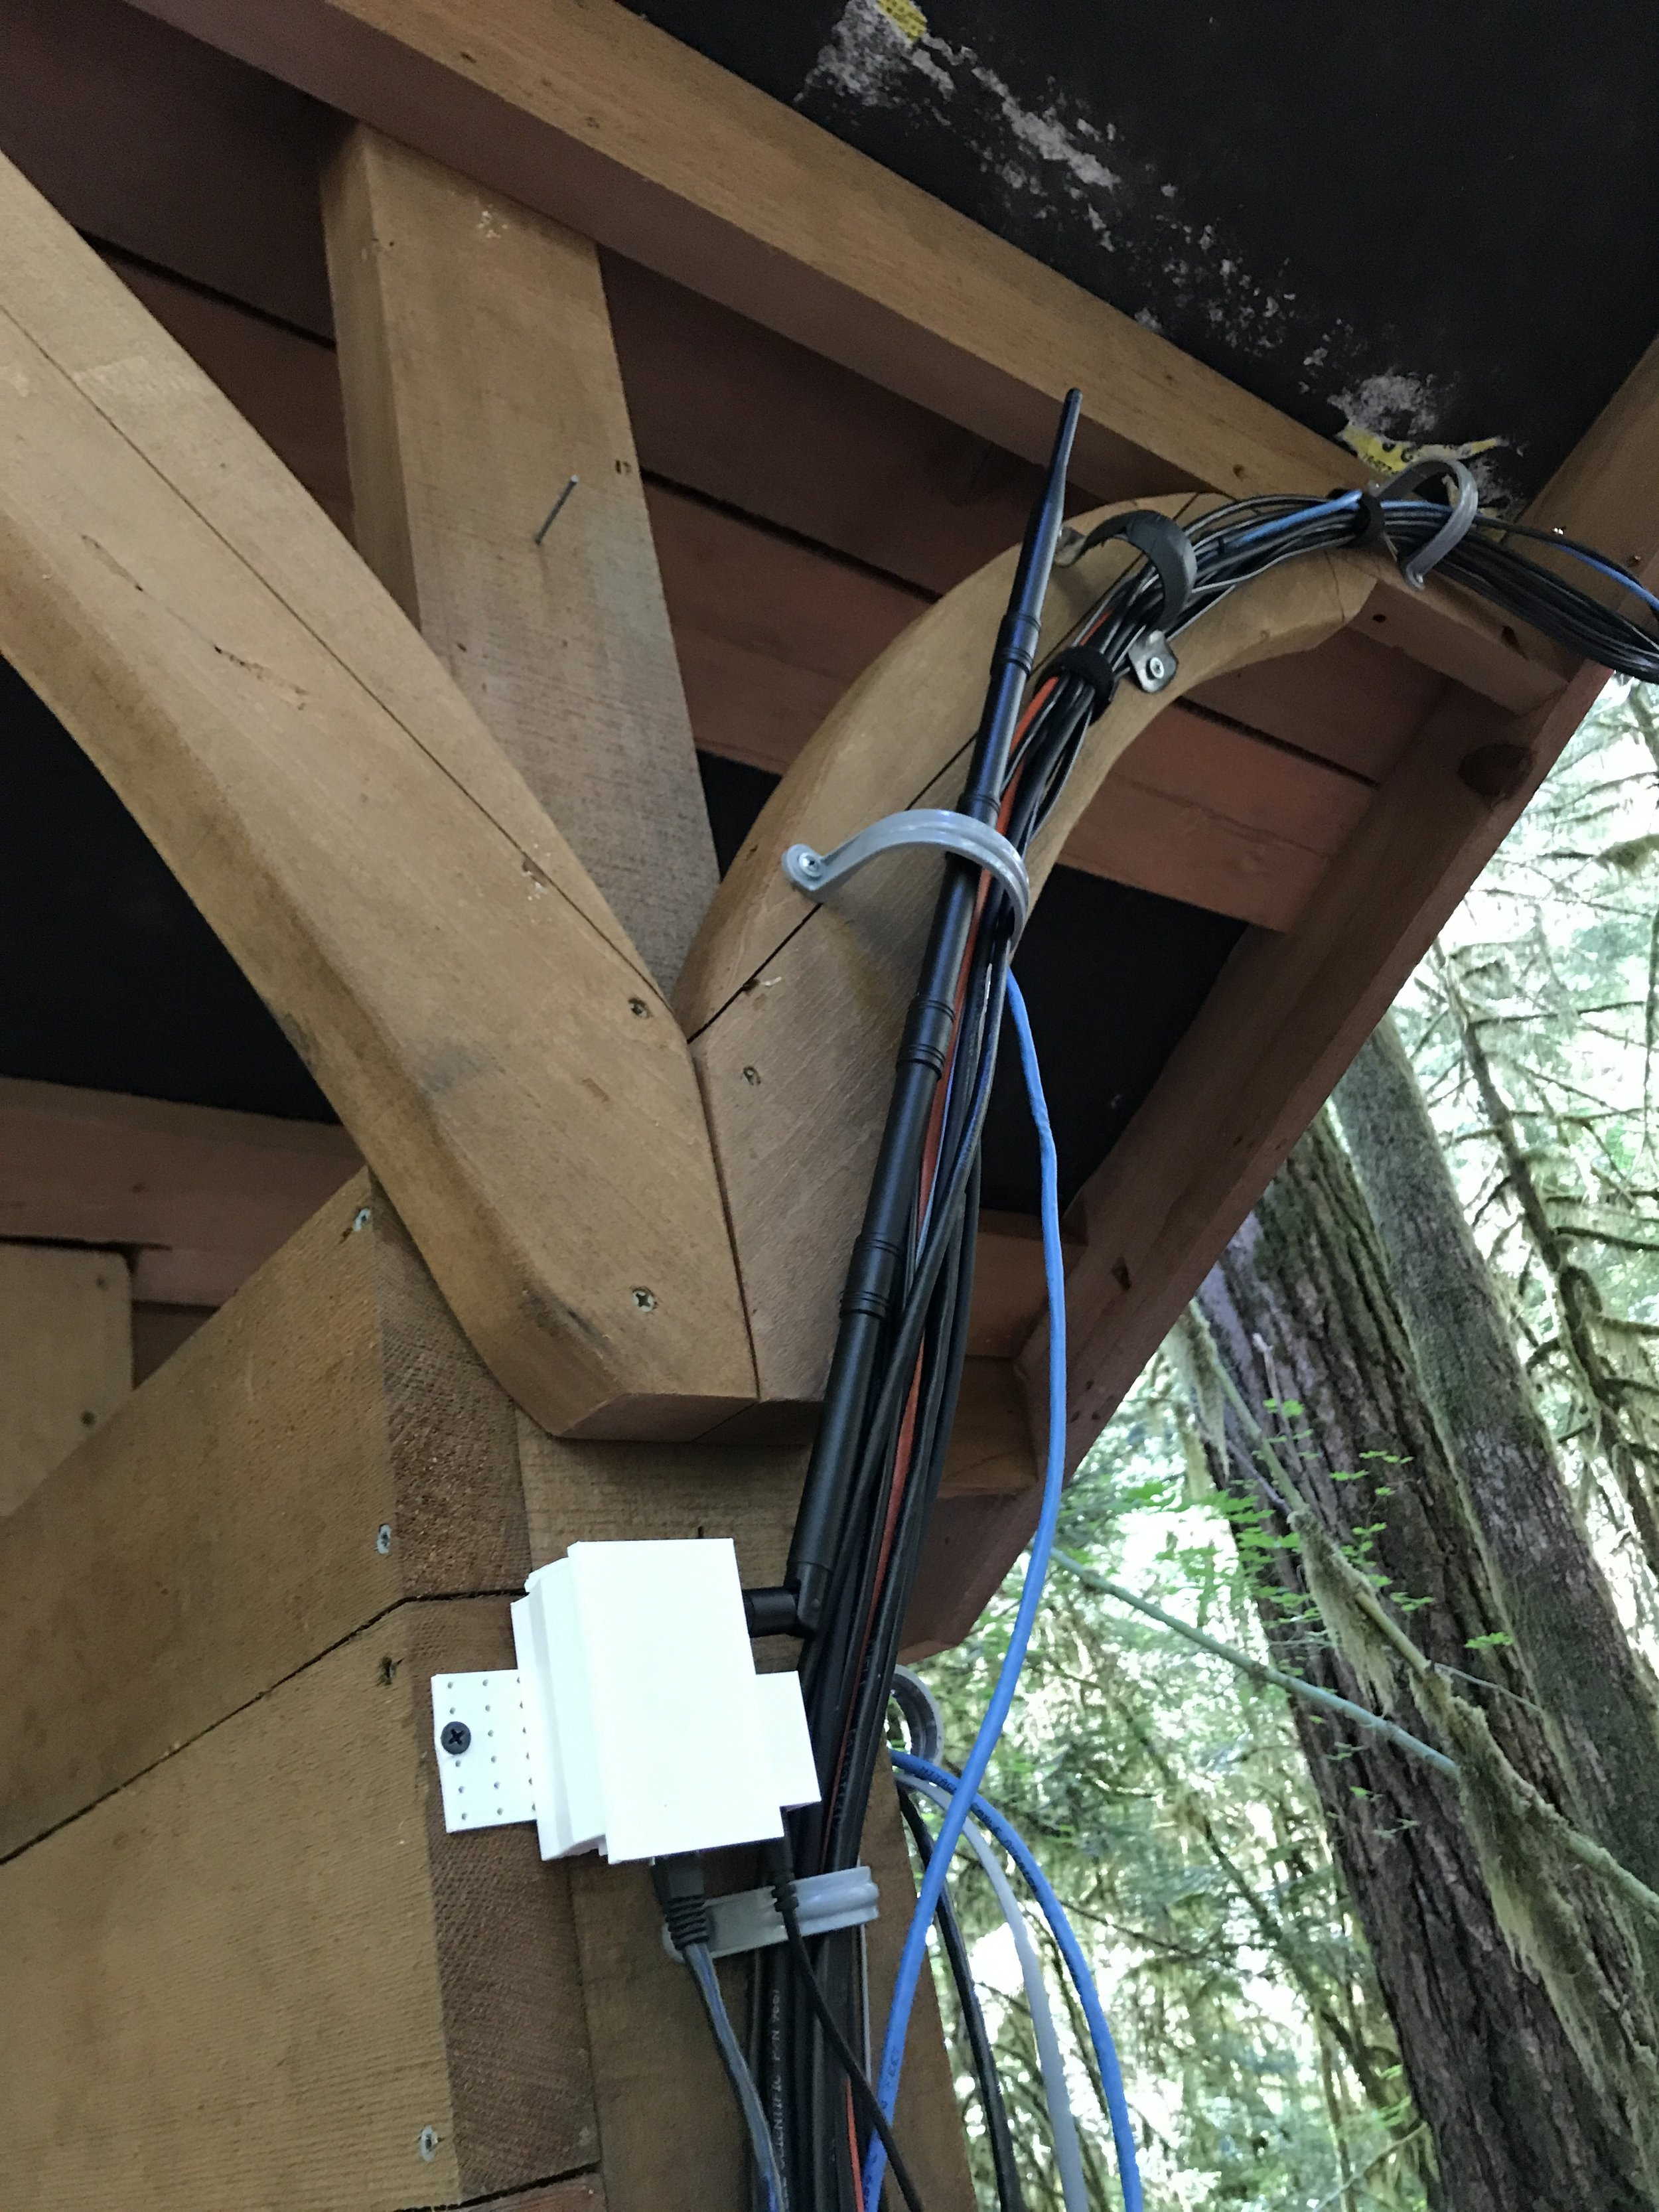 A preliminary version of the LoRa HUB at the HJ Andrews Forest